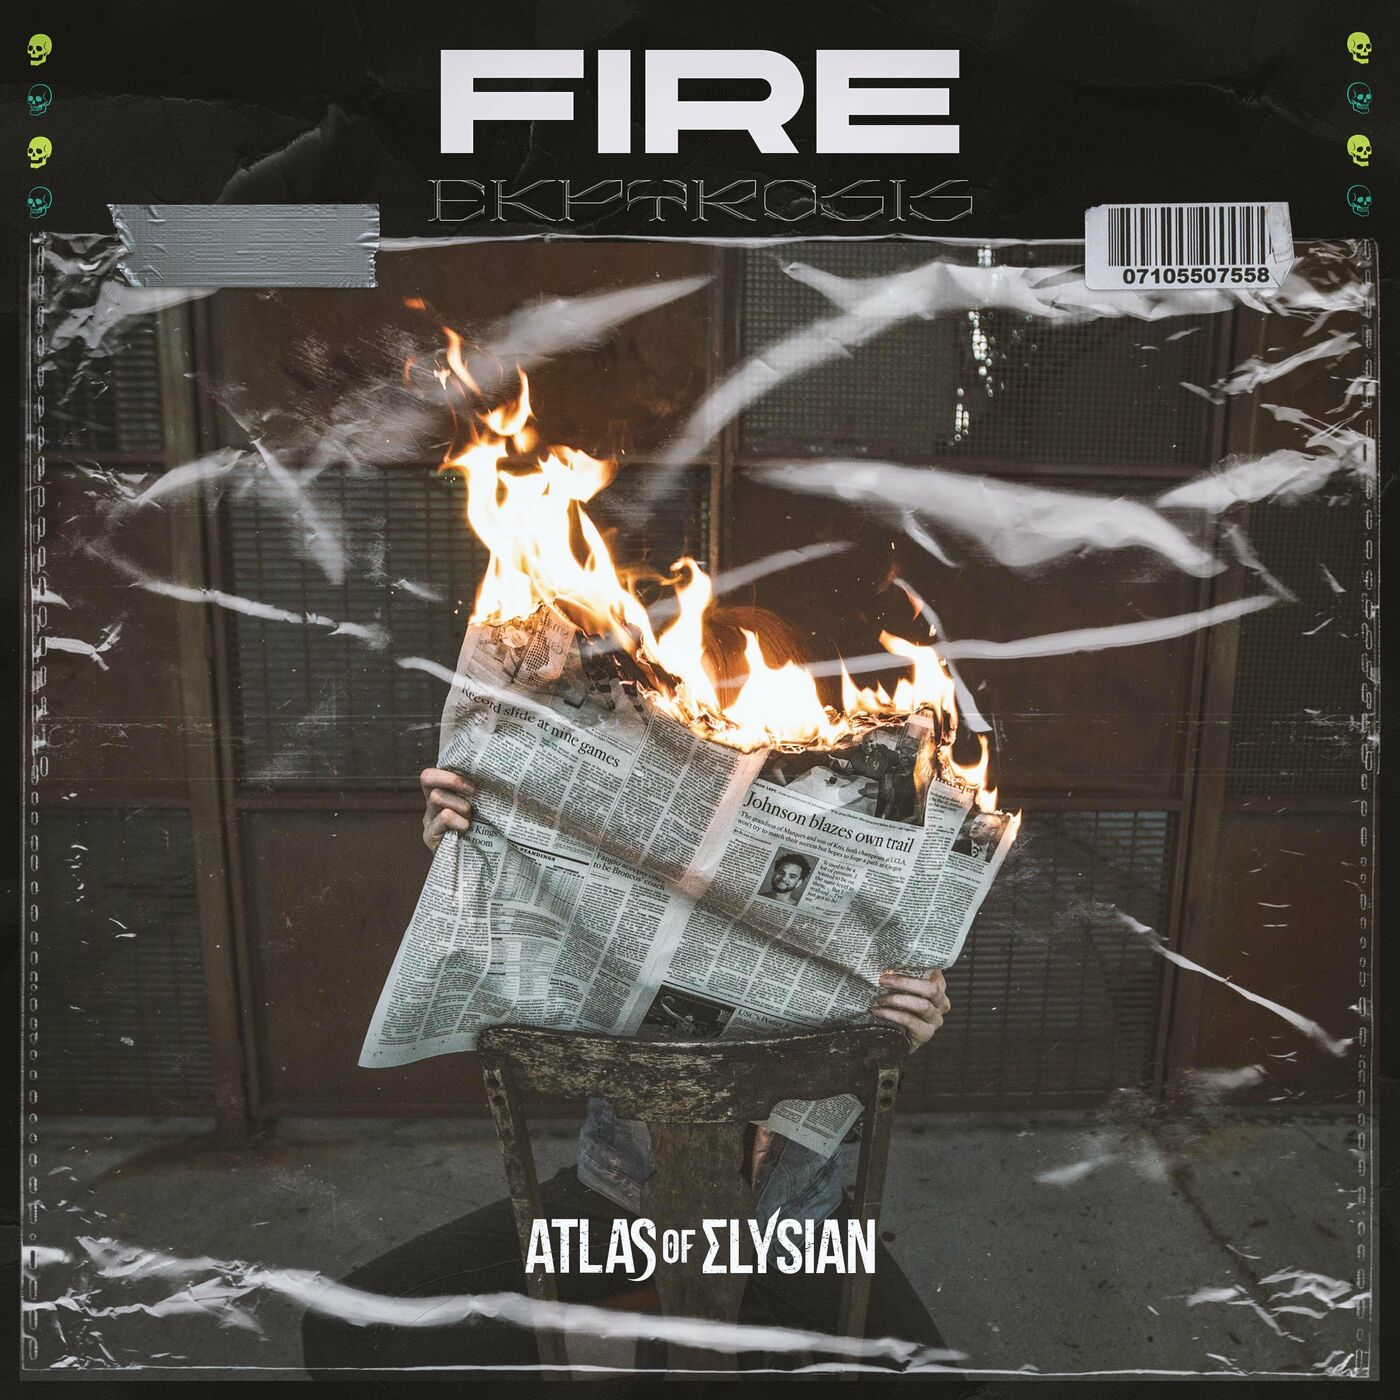 Atlas of Elysian - Fire (Ekpyrosis) [single] (2021)